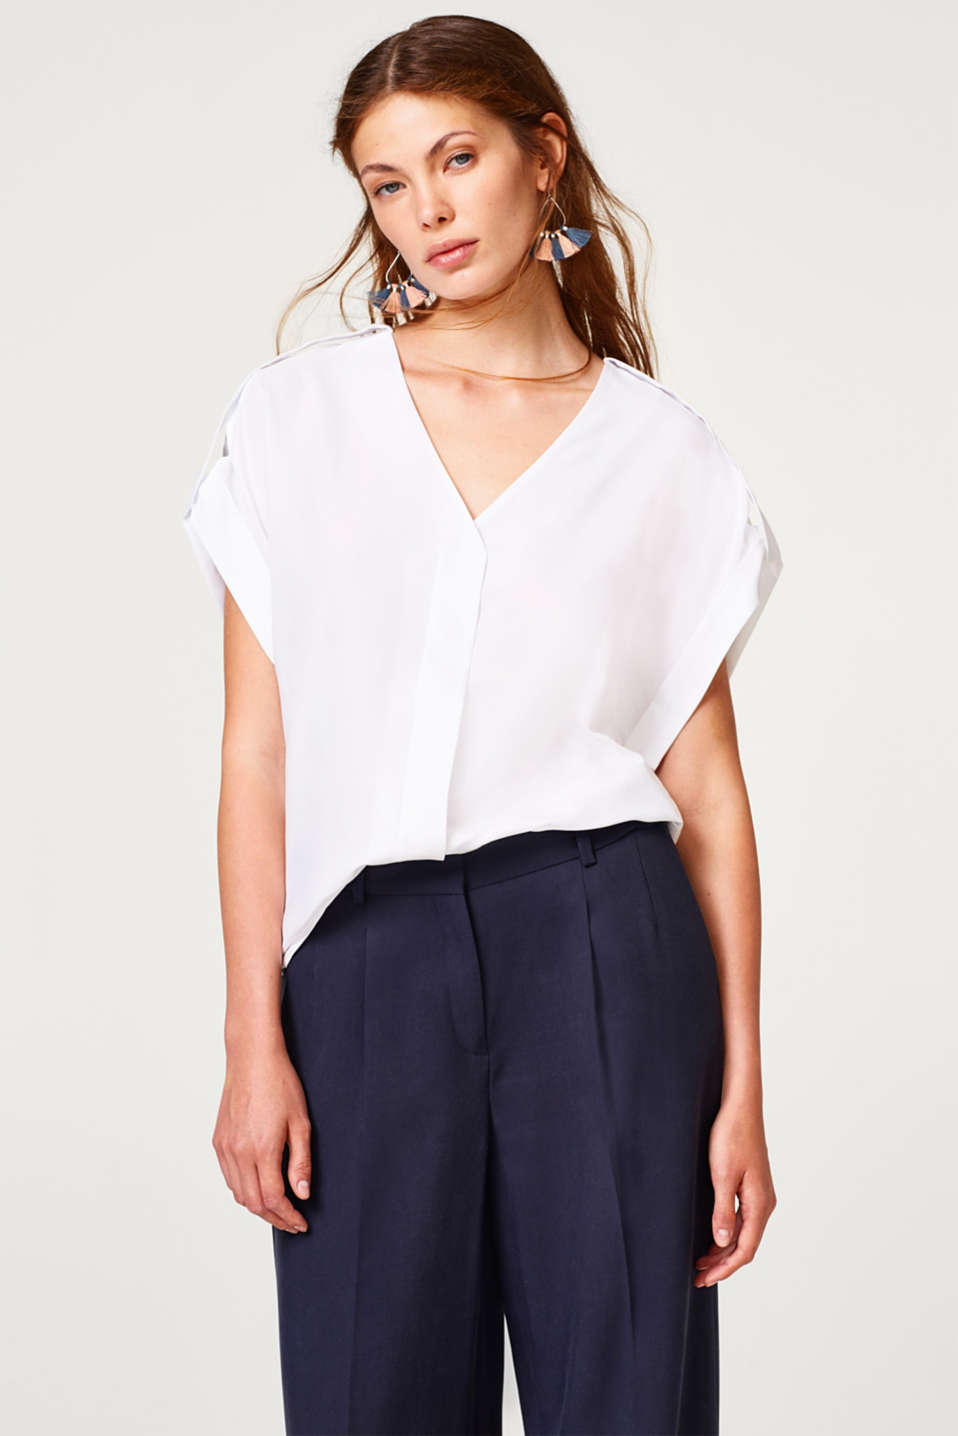 Esprit - Blouse top with a fine texture